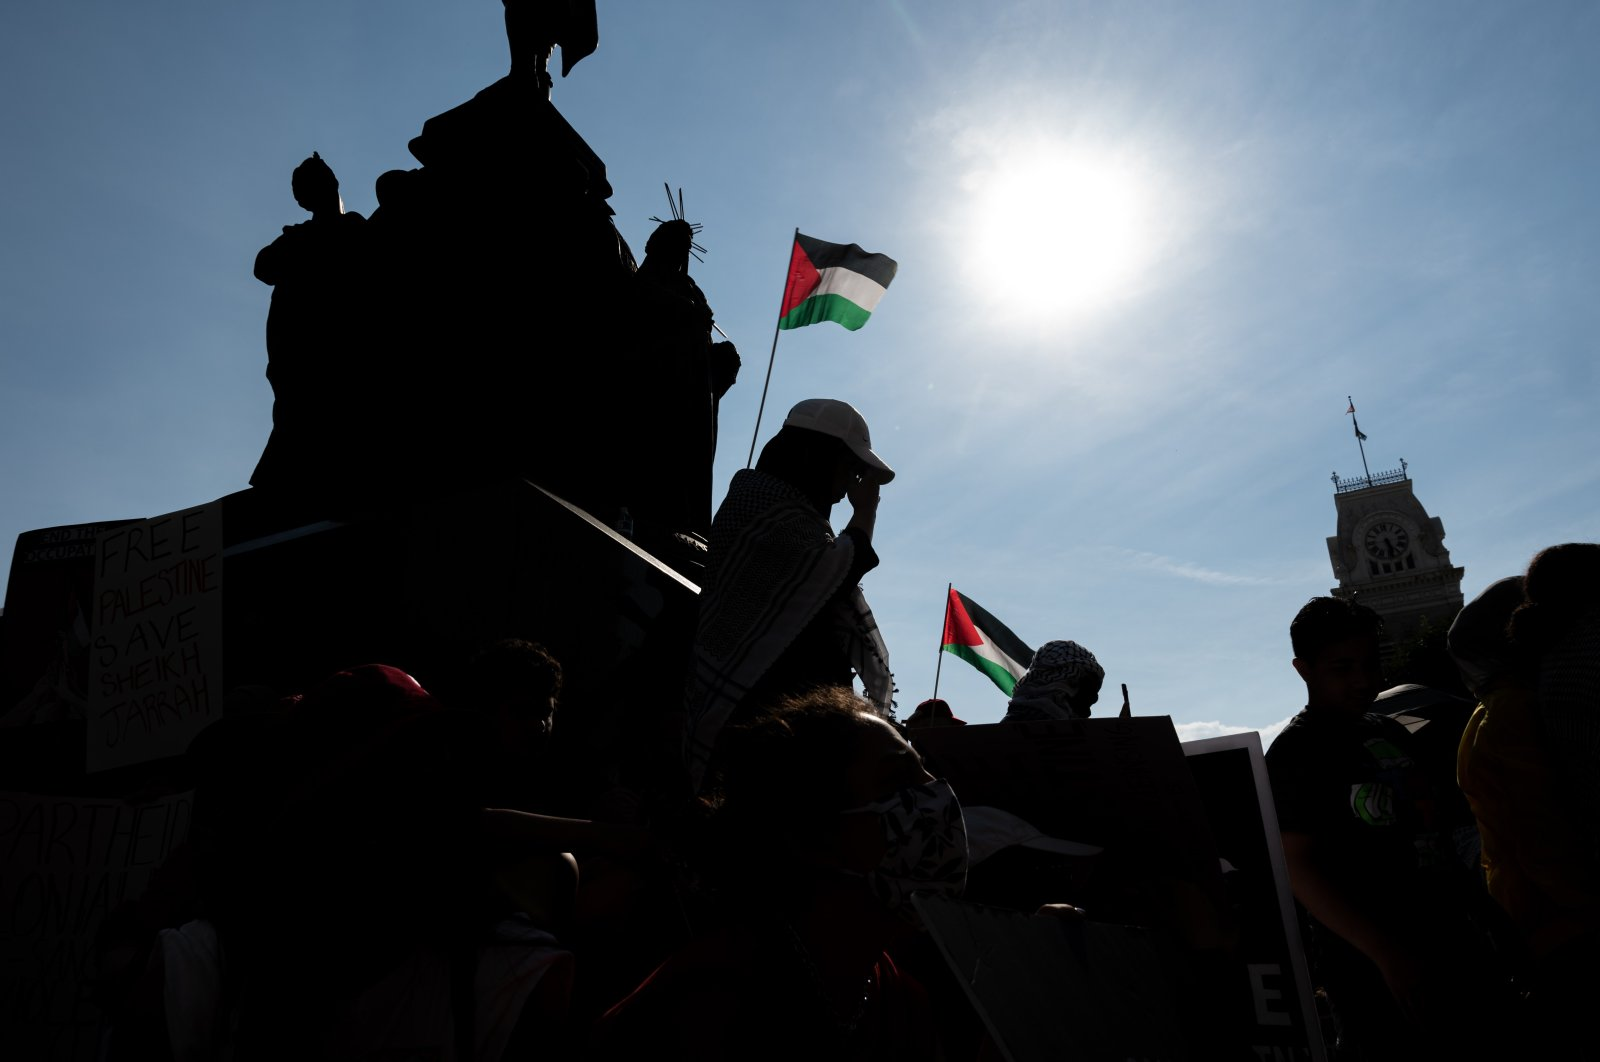 People listen to speakers and hold signs during a pro-Palestine protest on the steps of City Hall in Louisville, Kentucky, U.S., May 23, 2021. (AFP Photo)